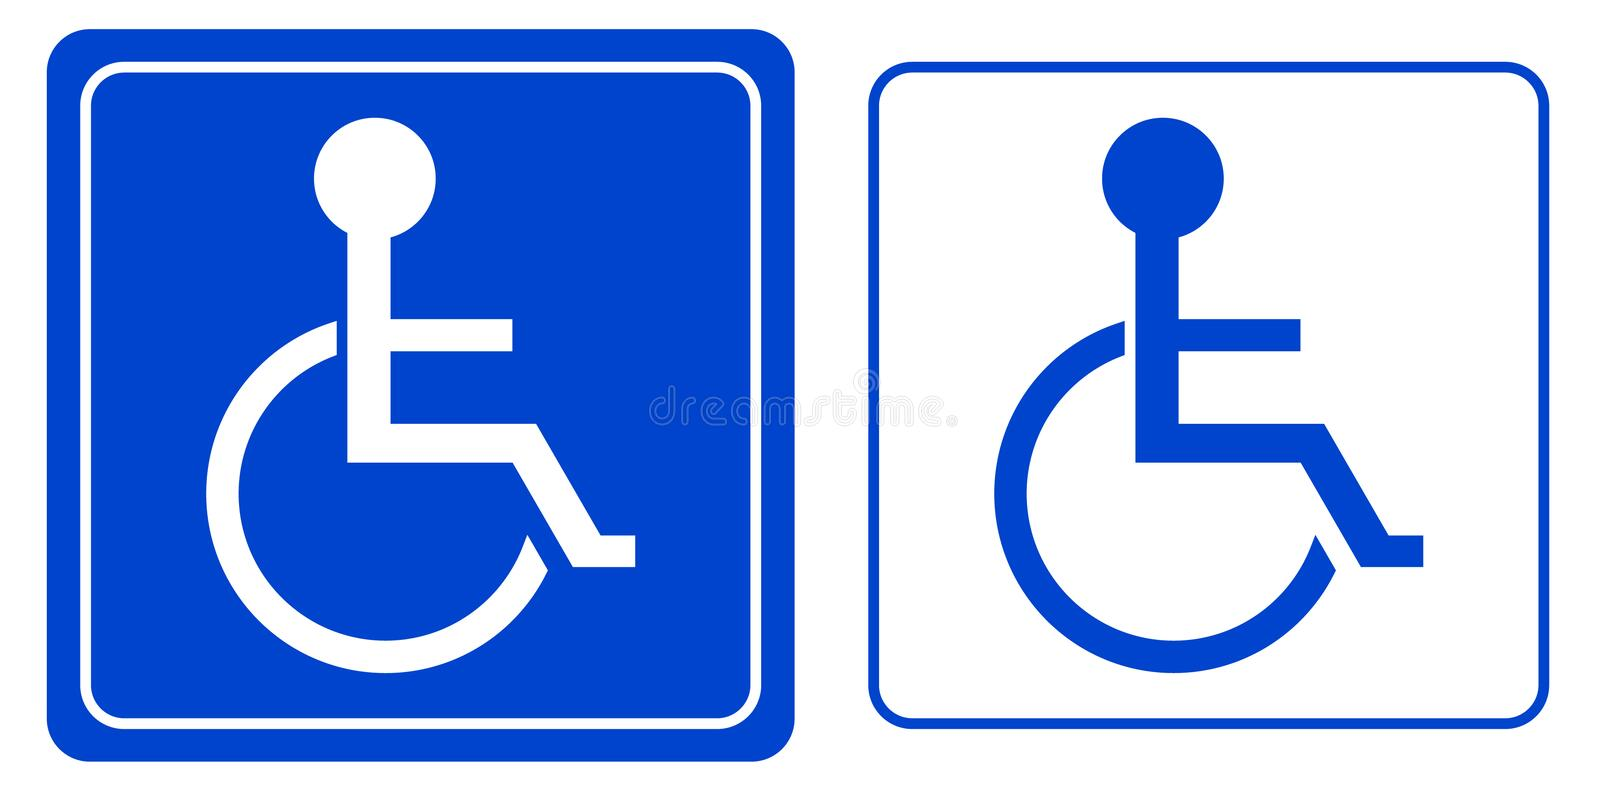 Handicap or wheelchair person symbol stock illustration